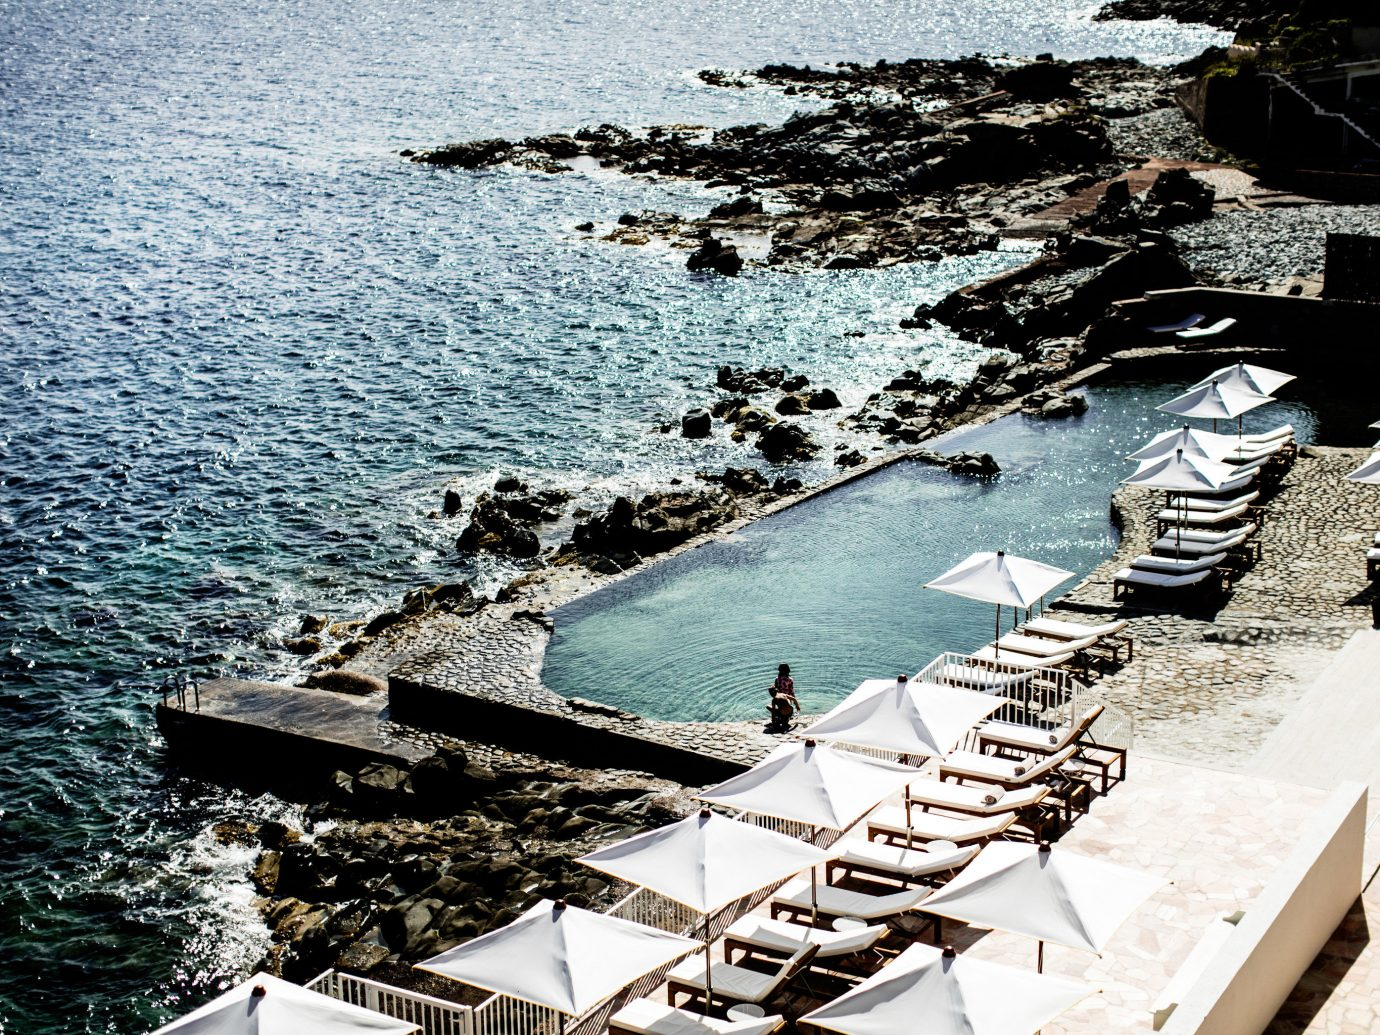 Boutique Hotels Hotels Luxury Travel water outdoor Sea vacation sky tourism